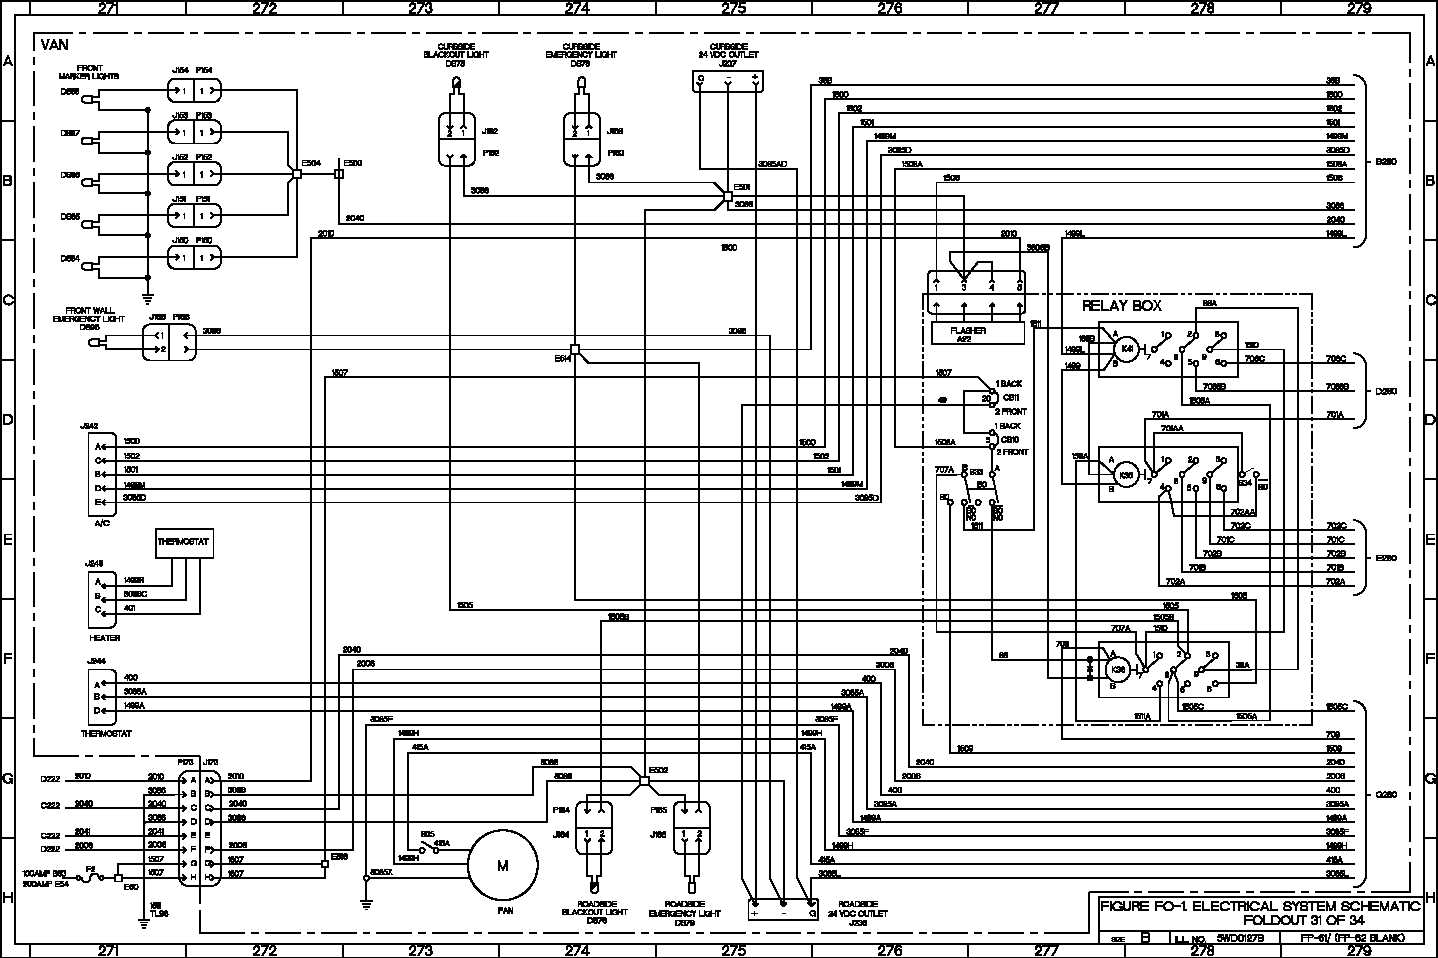 electrical system schematic - TM-9-2320-365-20-5_539 on